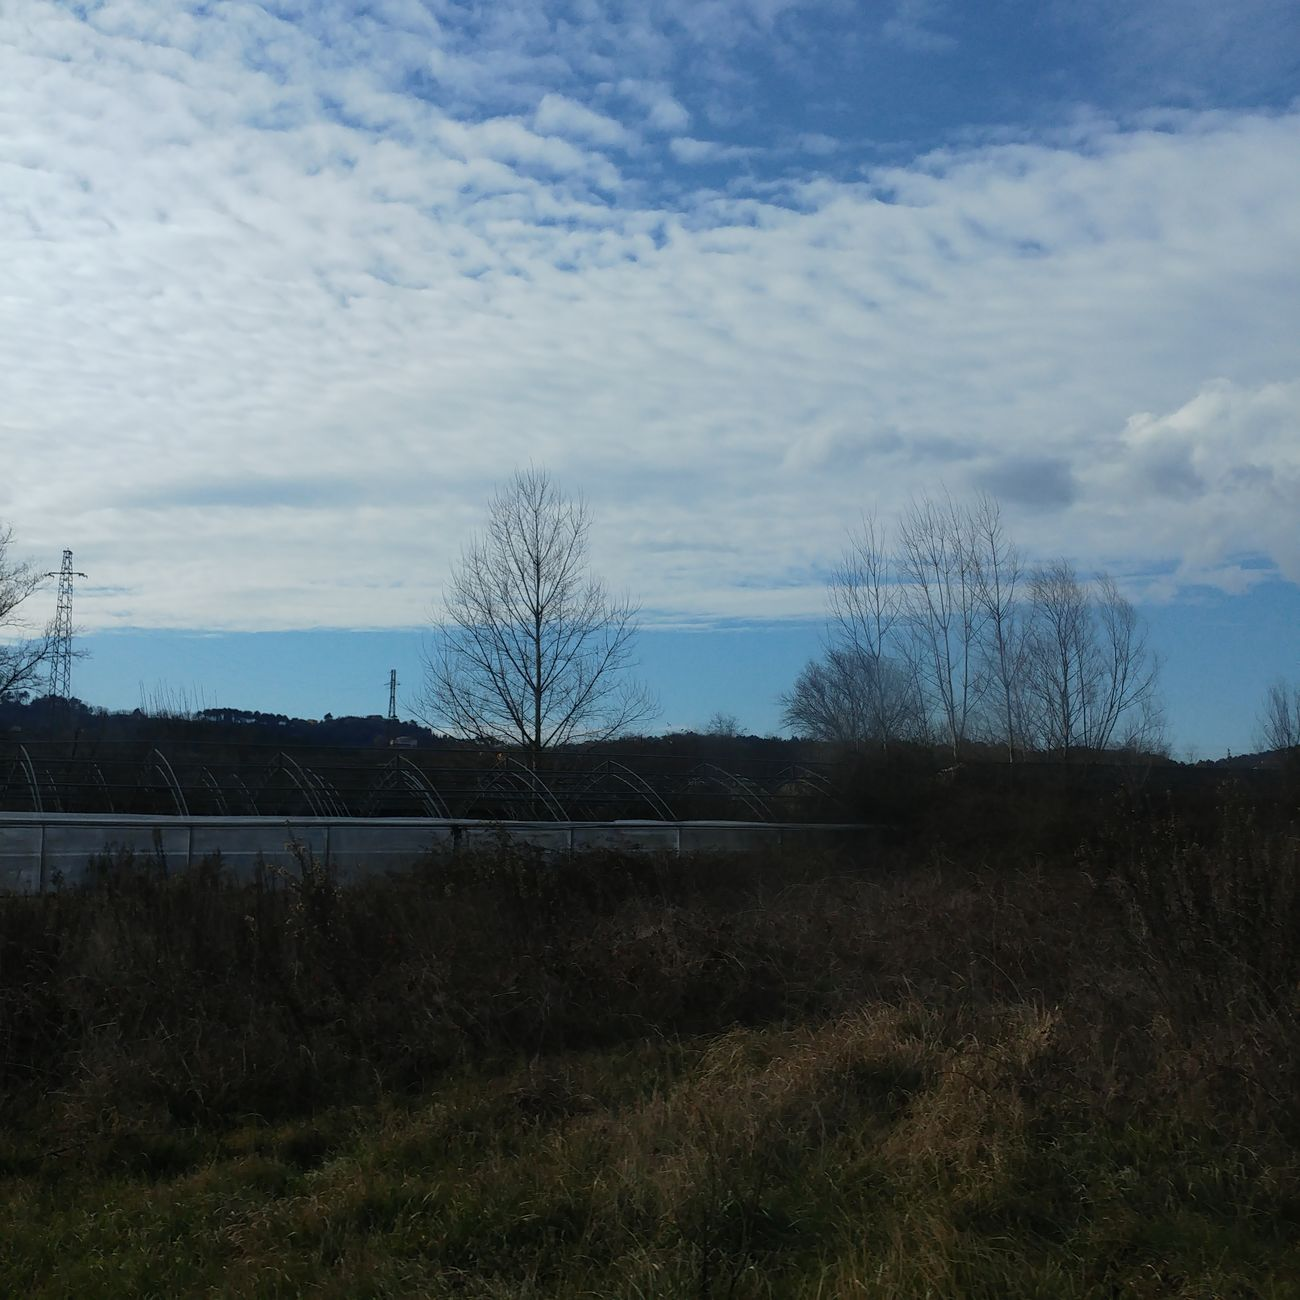 Capture Blue Sky White Clouds Cirrocumulus Winter Trees Trees Brown Green Grass Roadtrip Inthecar Winter Landscape Viewfrommycar View Beauty In Nature Nature Mood Photooftheday Italy Toscana